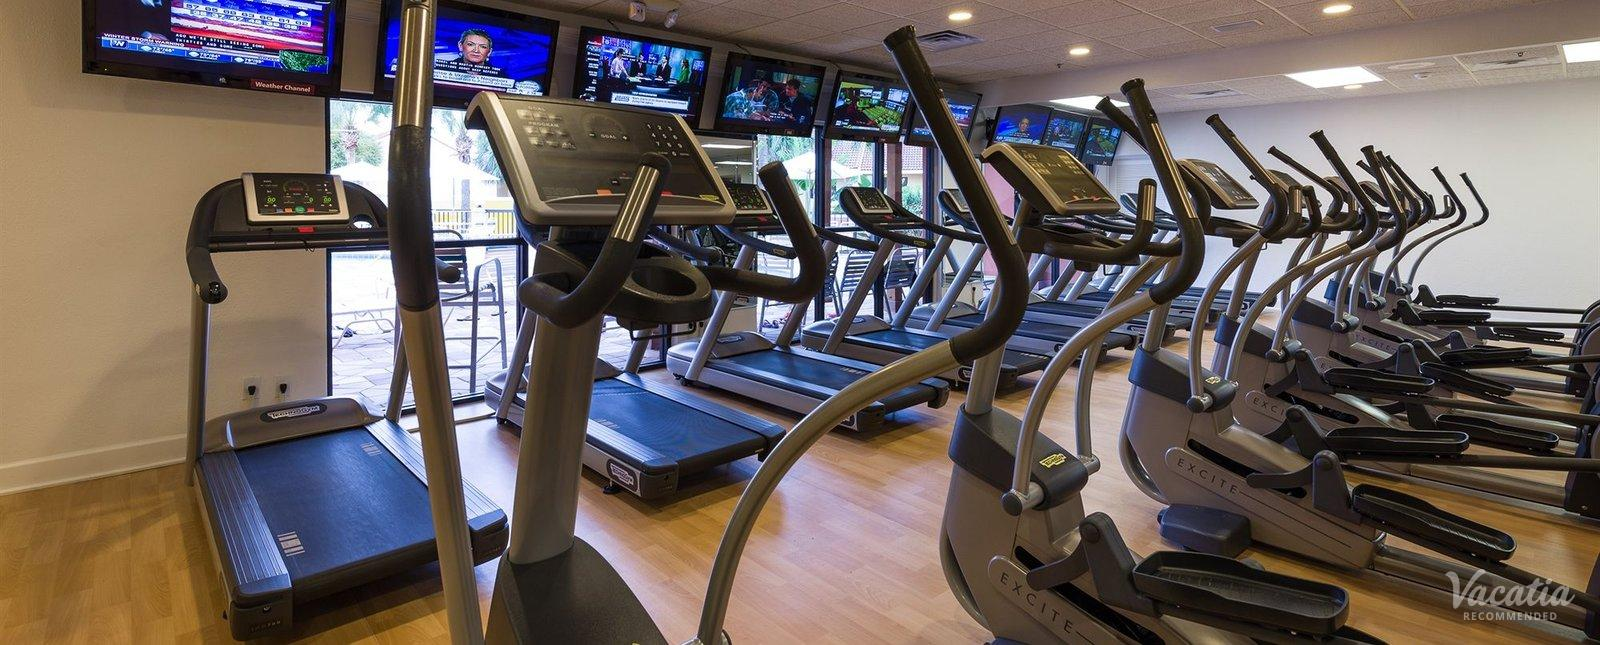 Westgate Vacation Orlando Villas Fitness Center